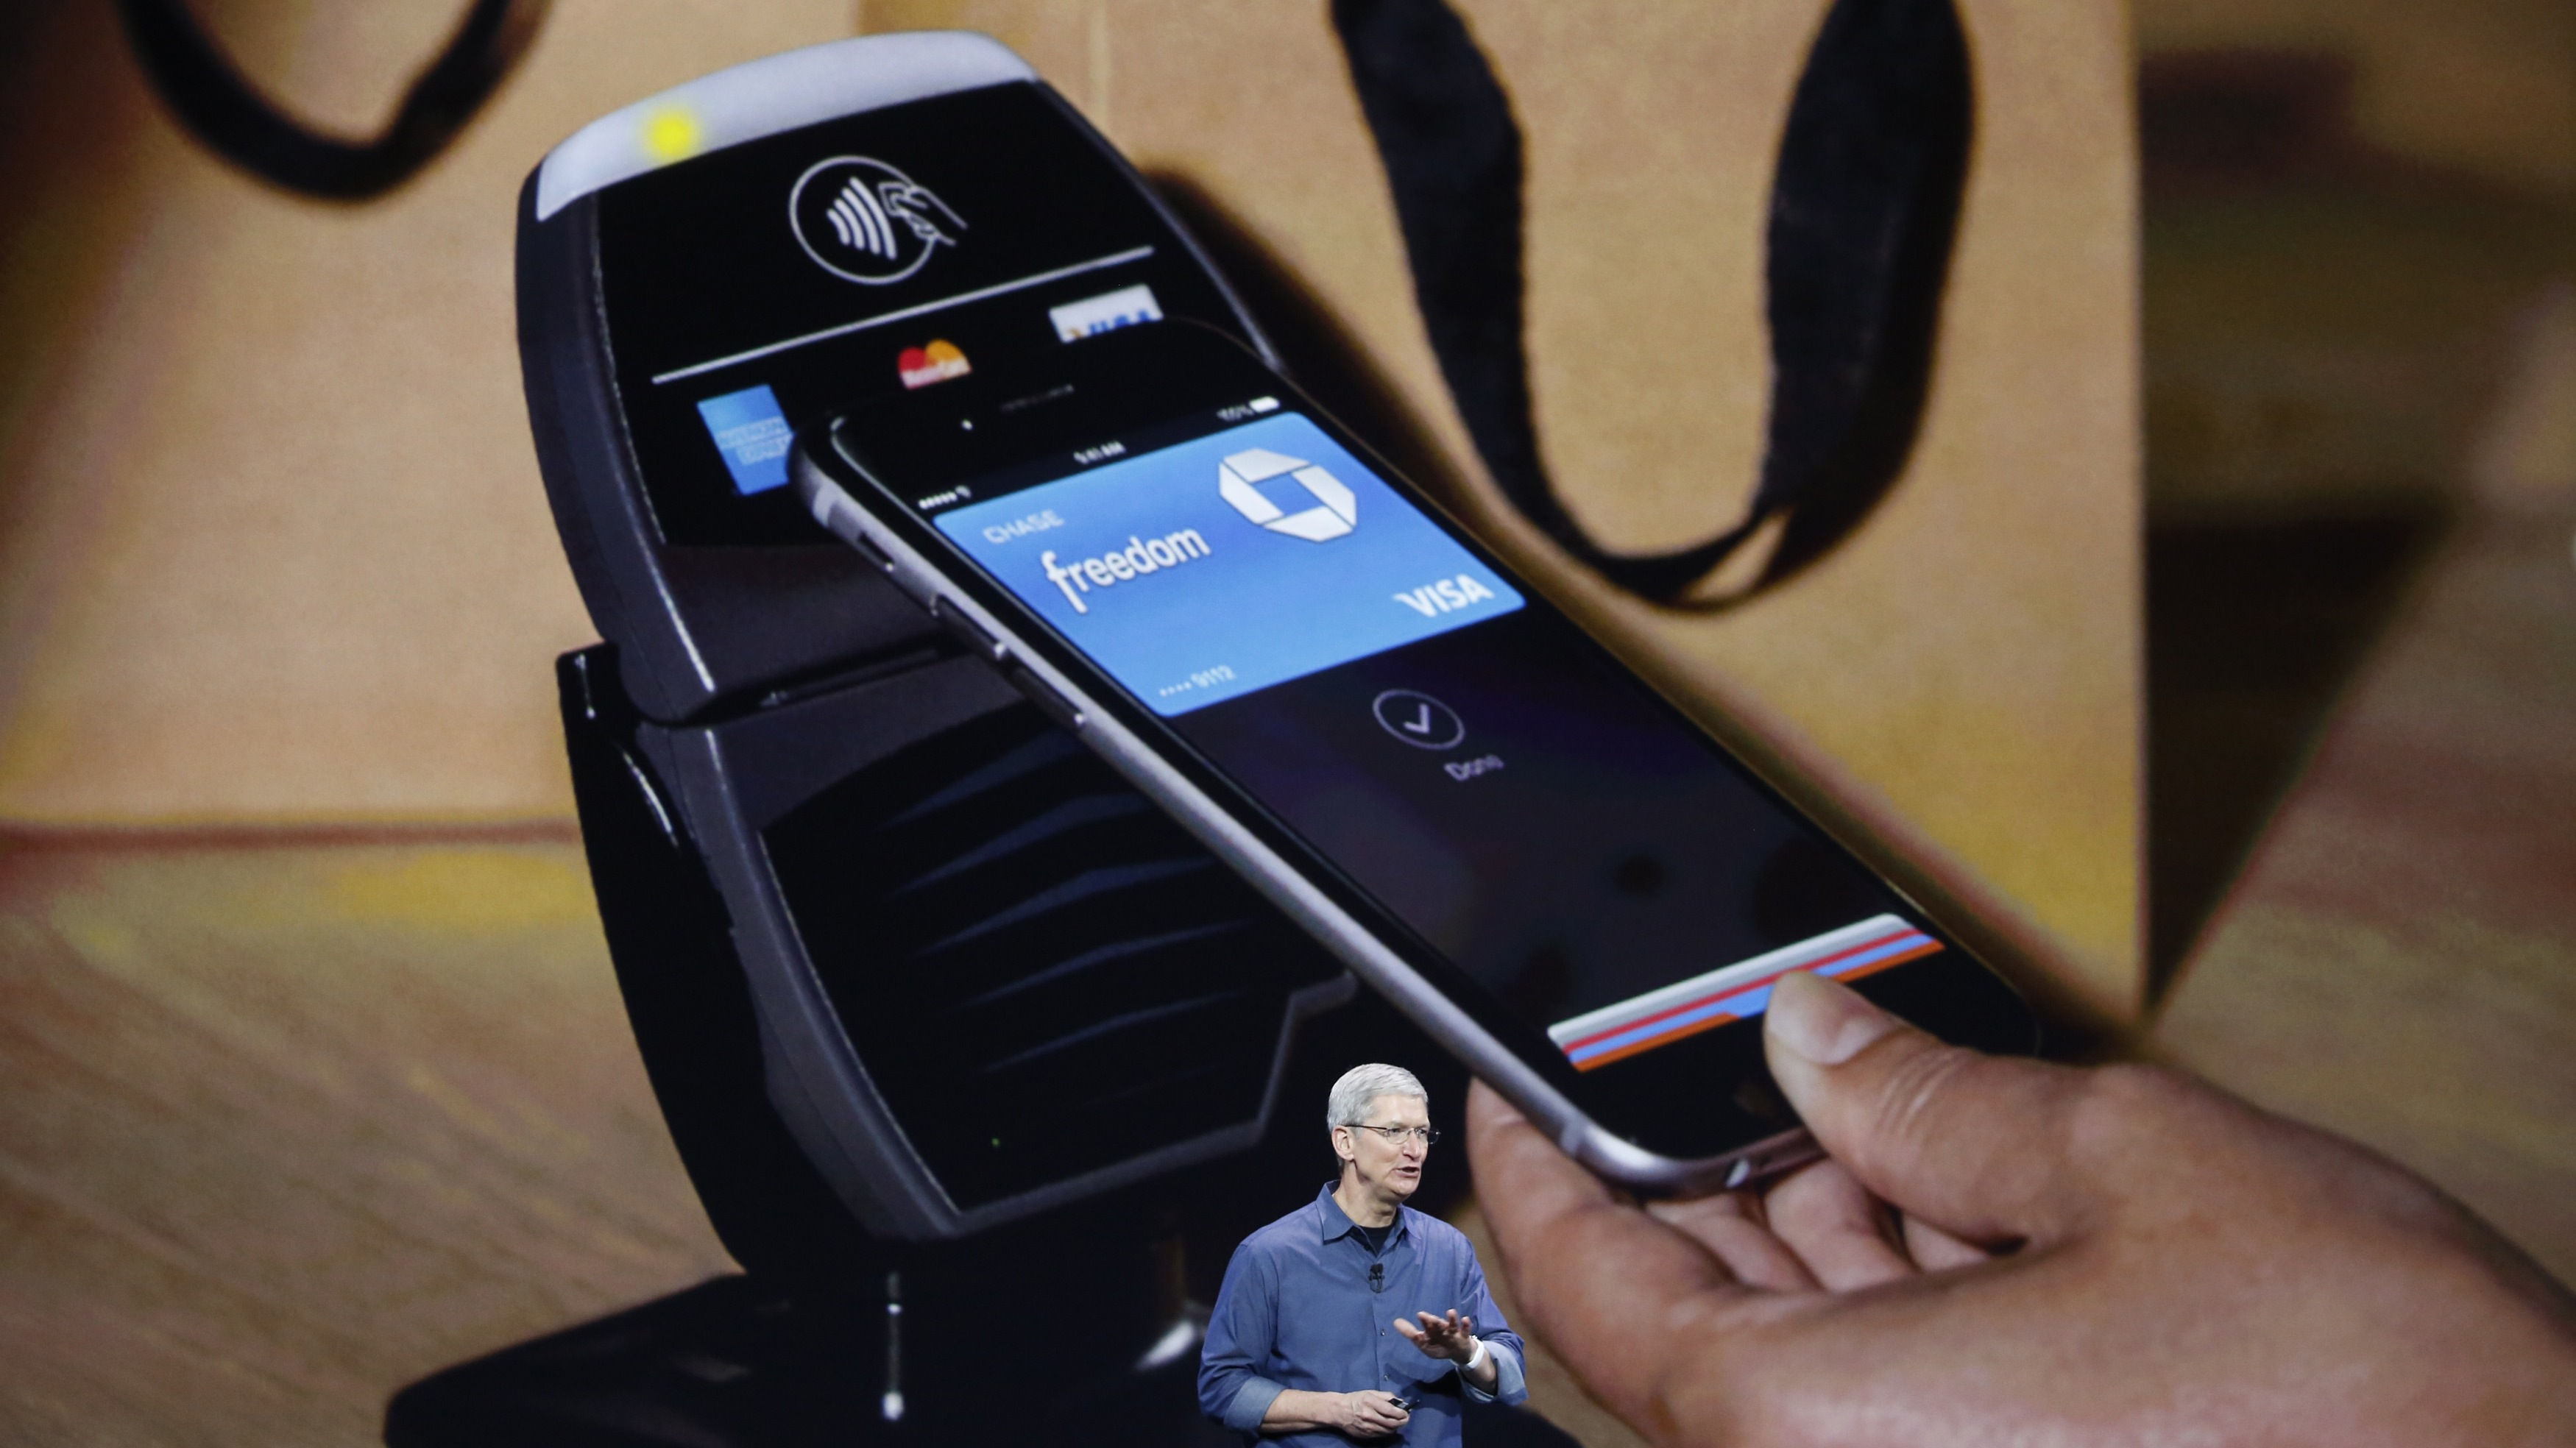 Capital one credit card uk apple pay